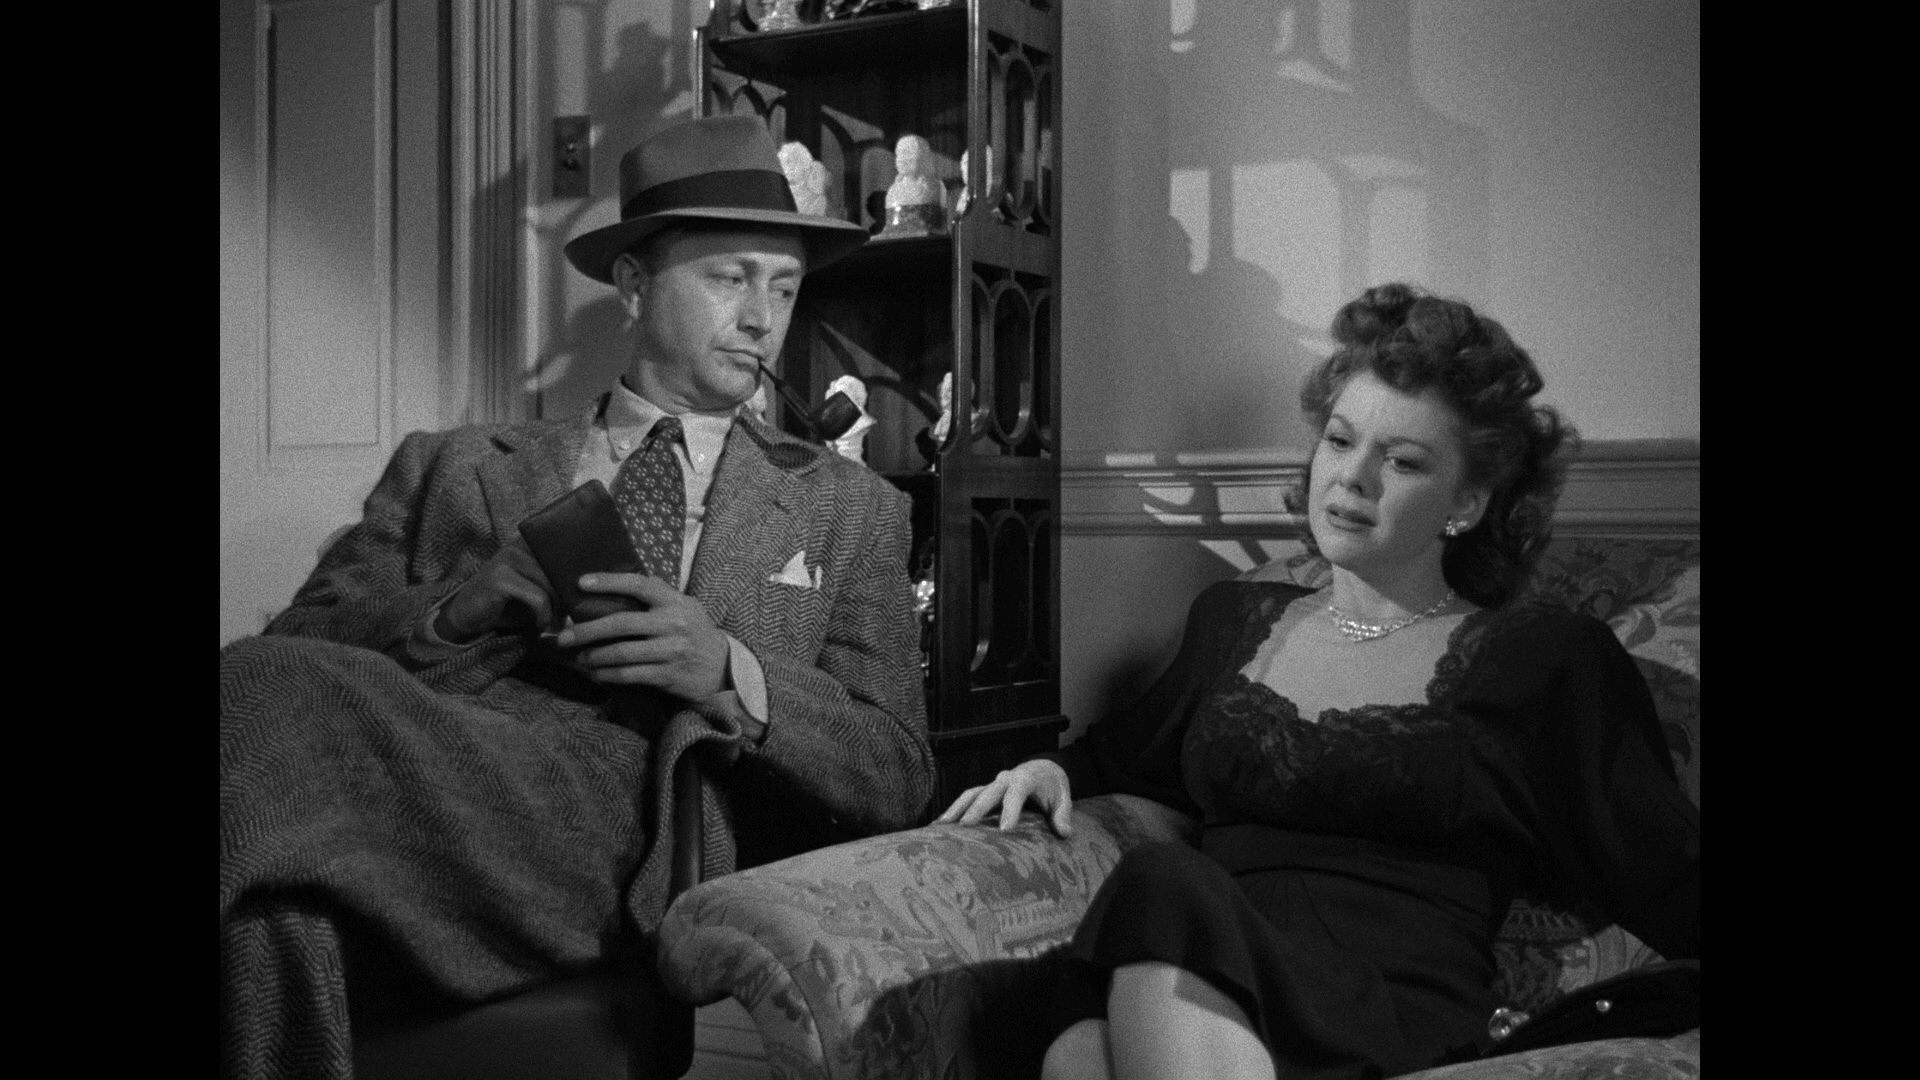 Crossfire (1947) [Warner Archive Blu-ray review] 4